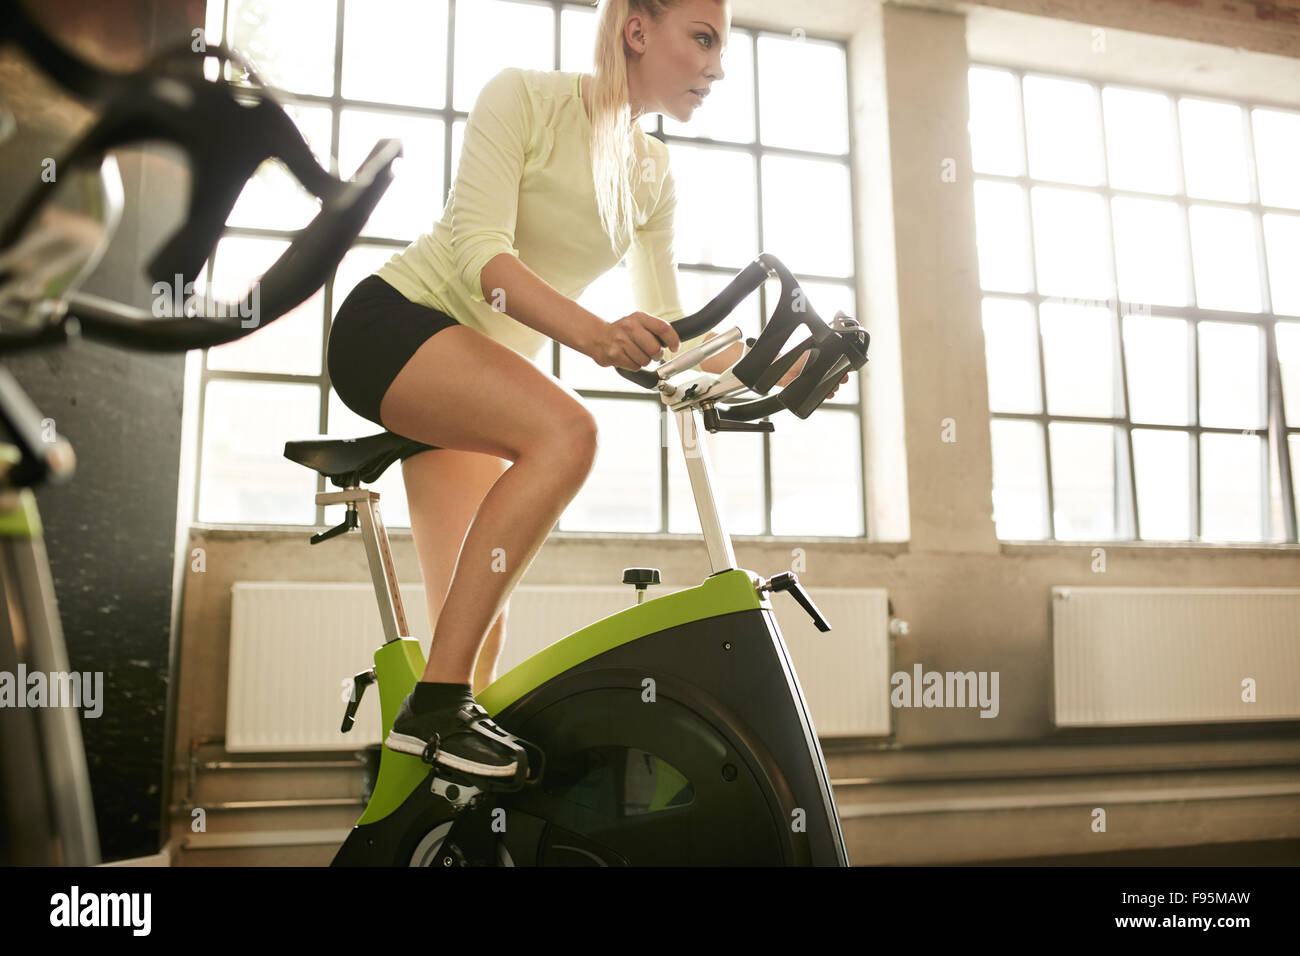 Fitness woman on bicycle doing spinning at gym. Fit young female working out on gym bike.Stock Photo